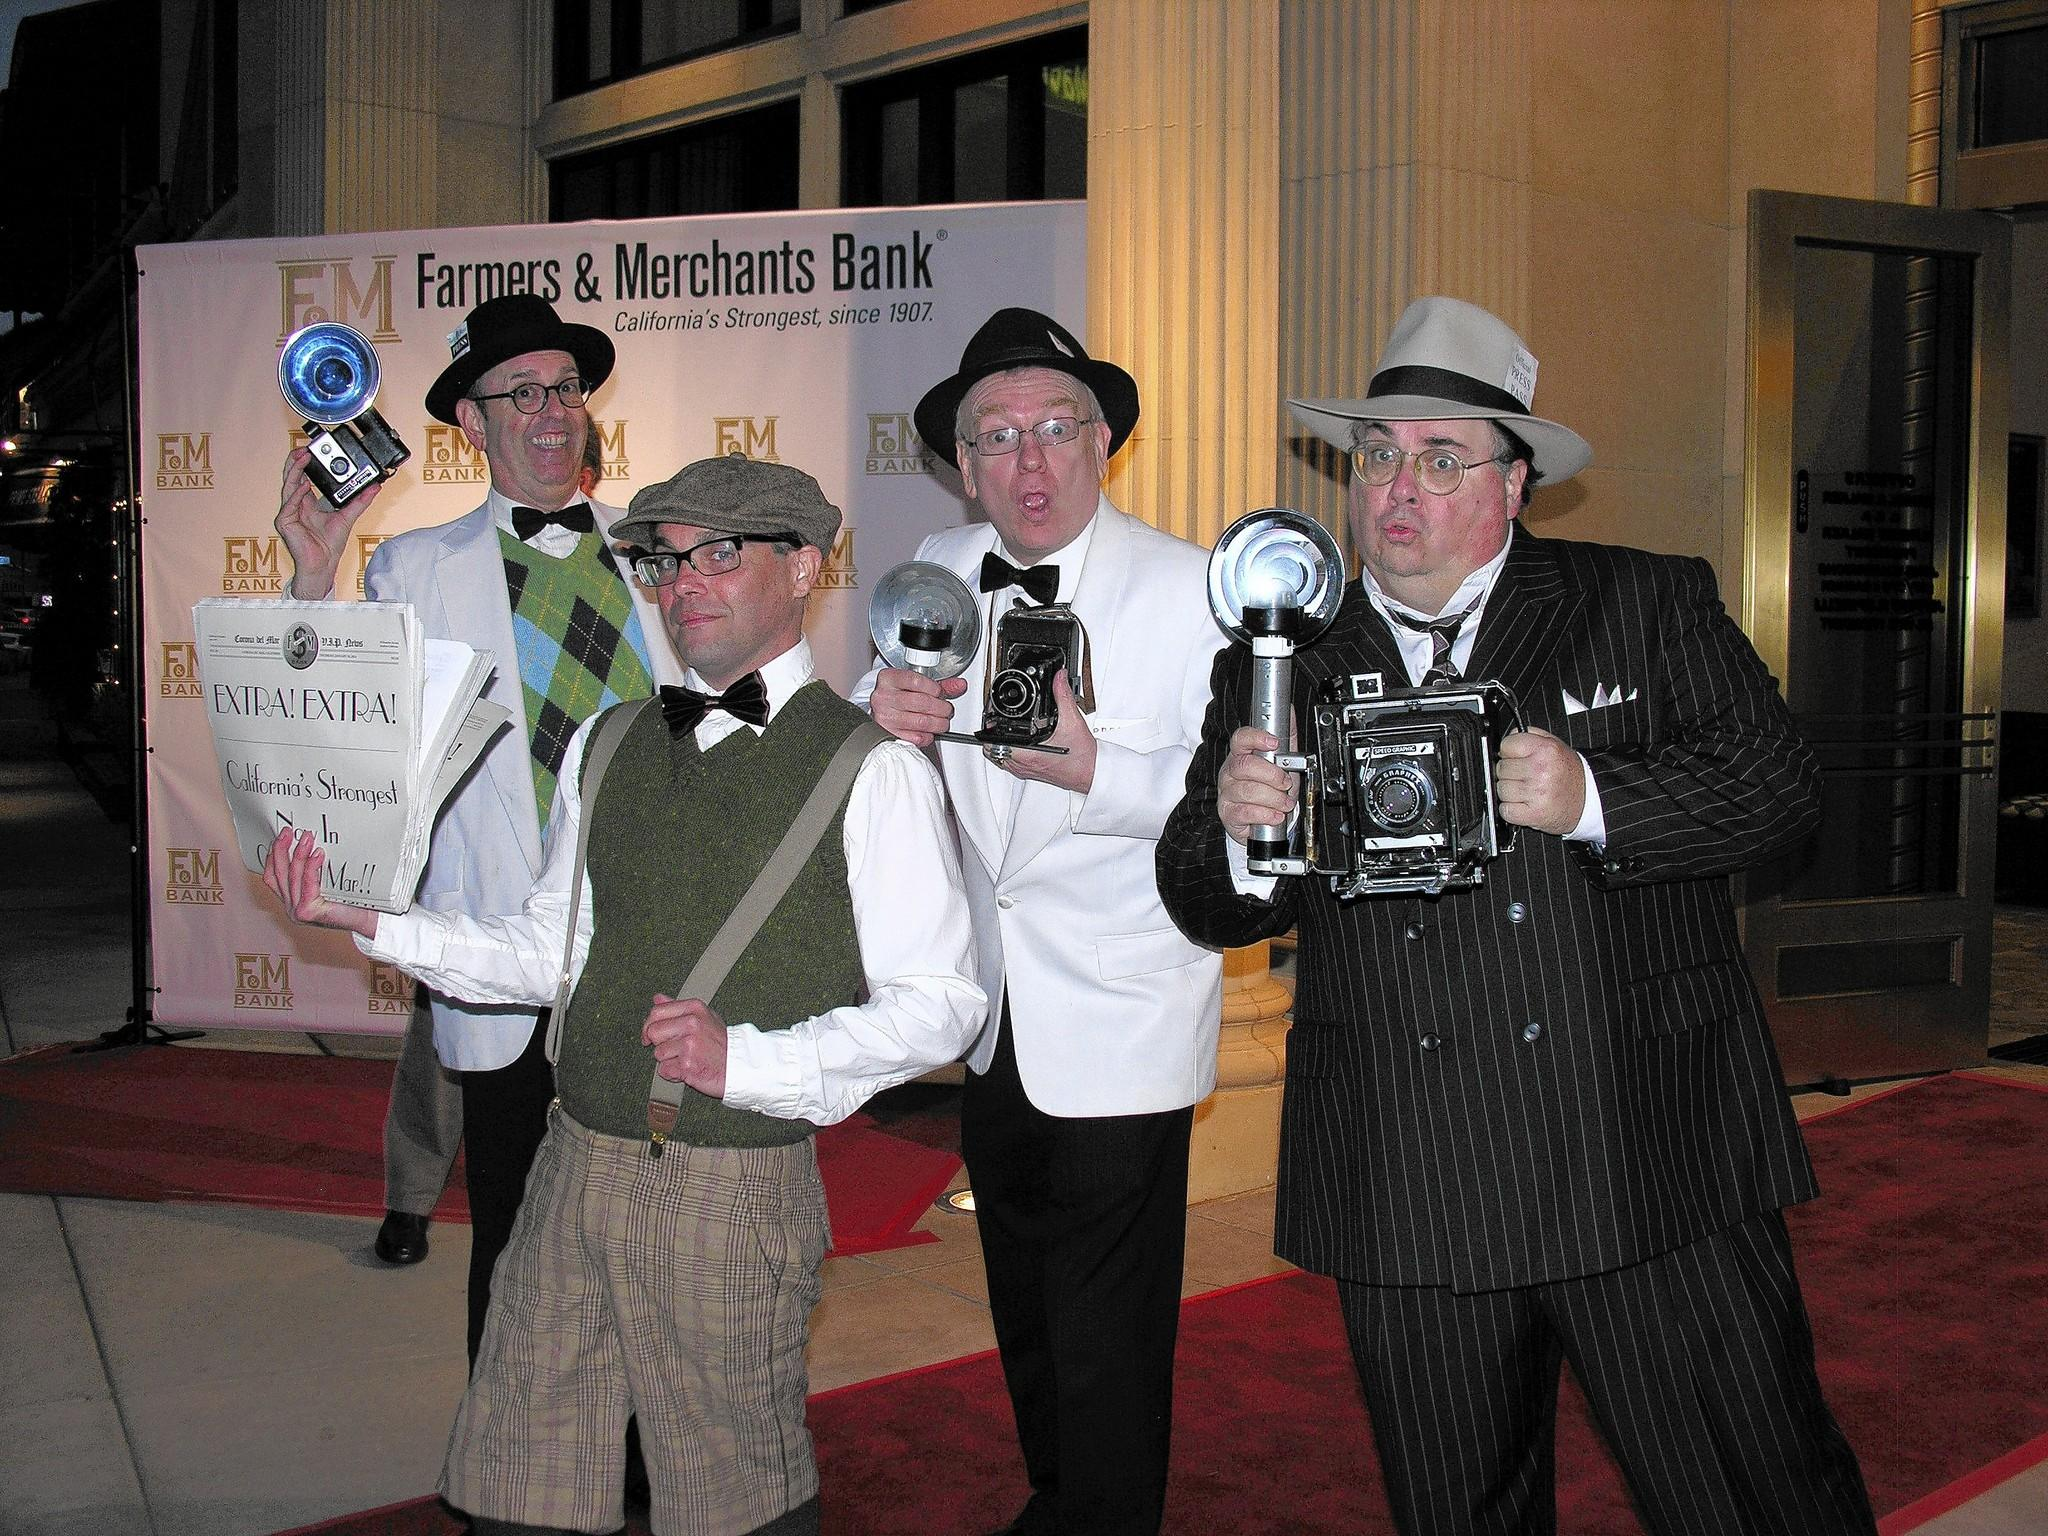 Keeping with the Roaring 20s theme, in honor of Farmers & Merchants' headquarters built in 1923, paparazzi lined the red carpet as a newsboy shouted the headline that the bank had arrived in Corona del Mar.